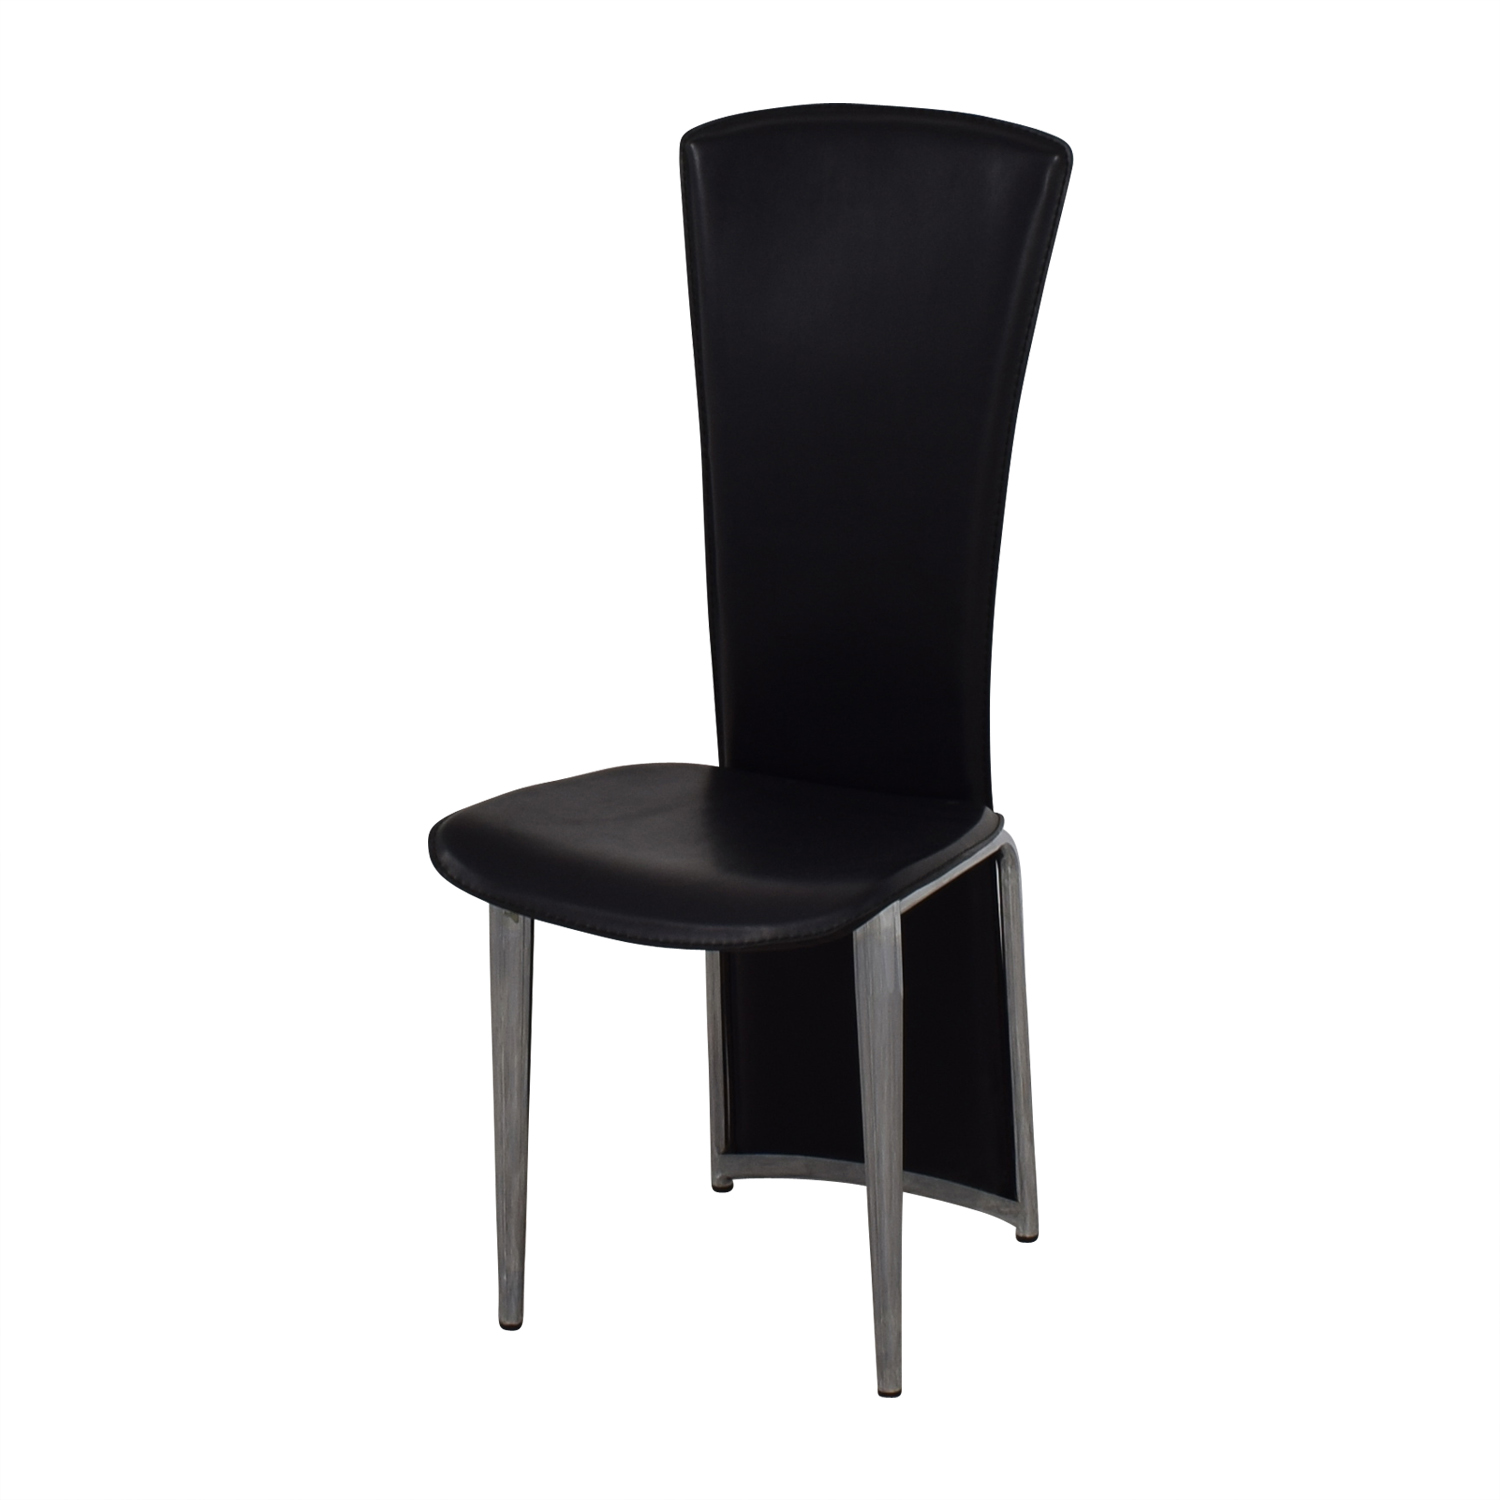 86 off high back black chair chairs. Black Bedroom Furniture Sets. Home Design Ideas